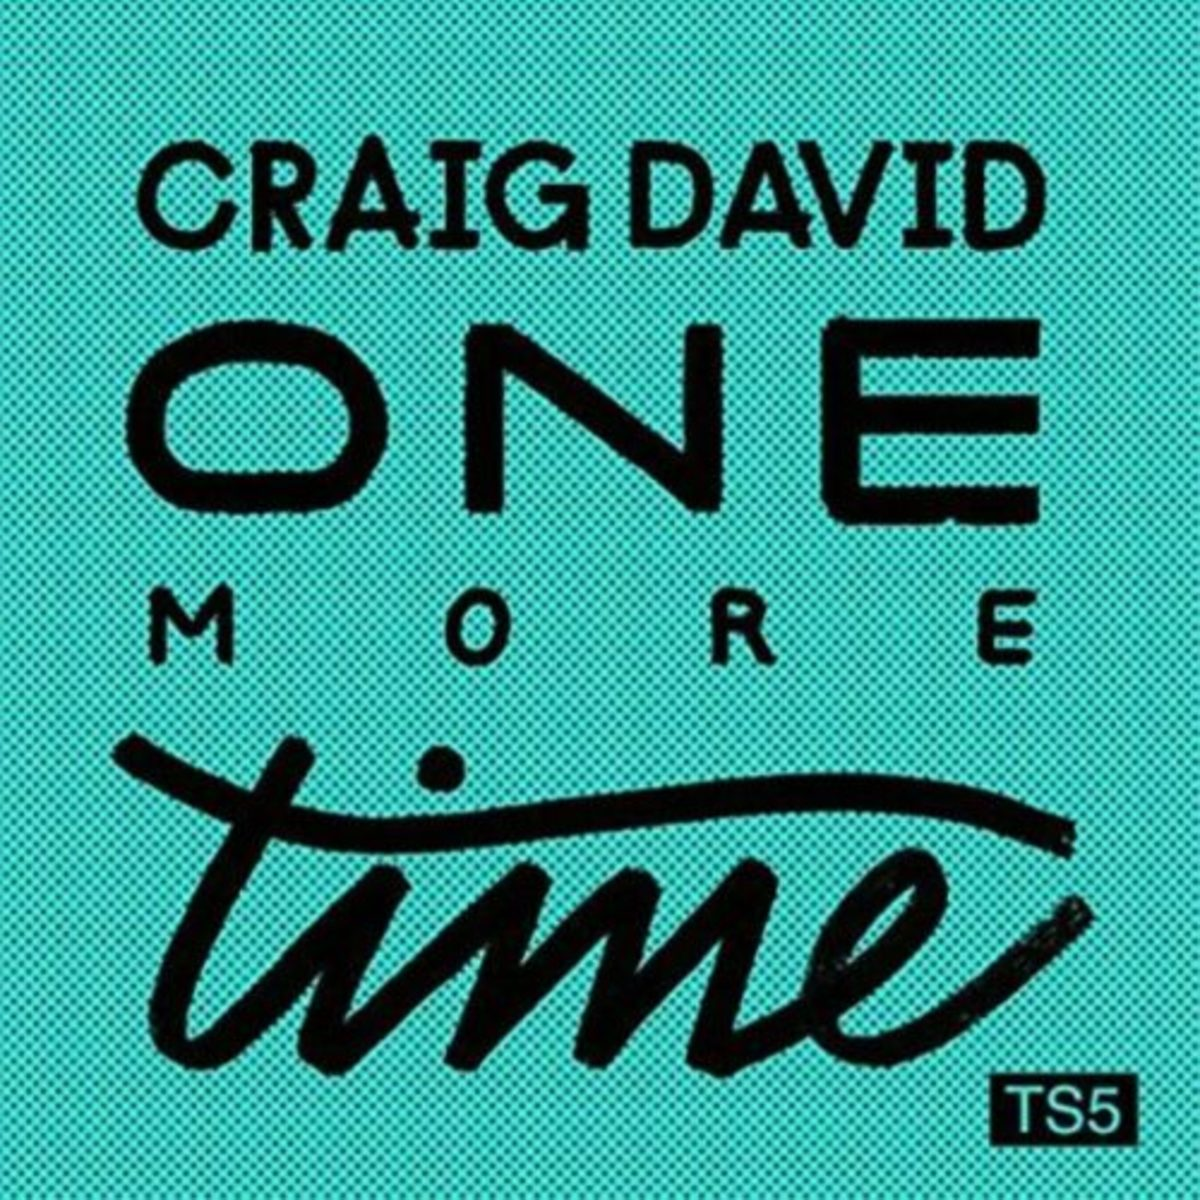 craig-david-one-more-time.jpg